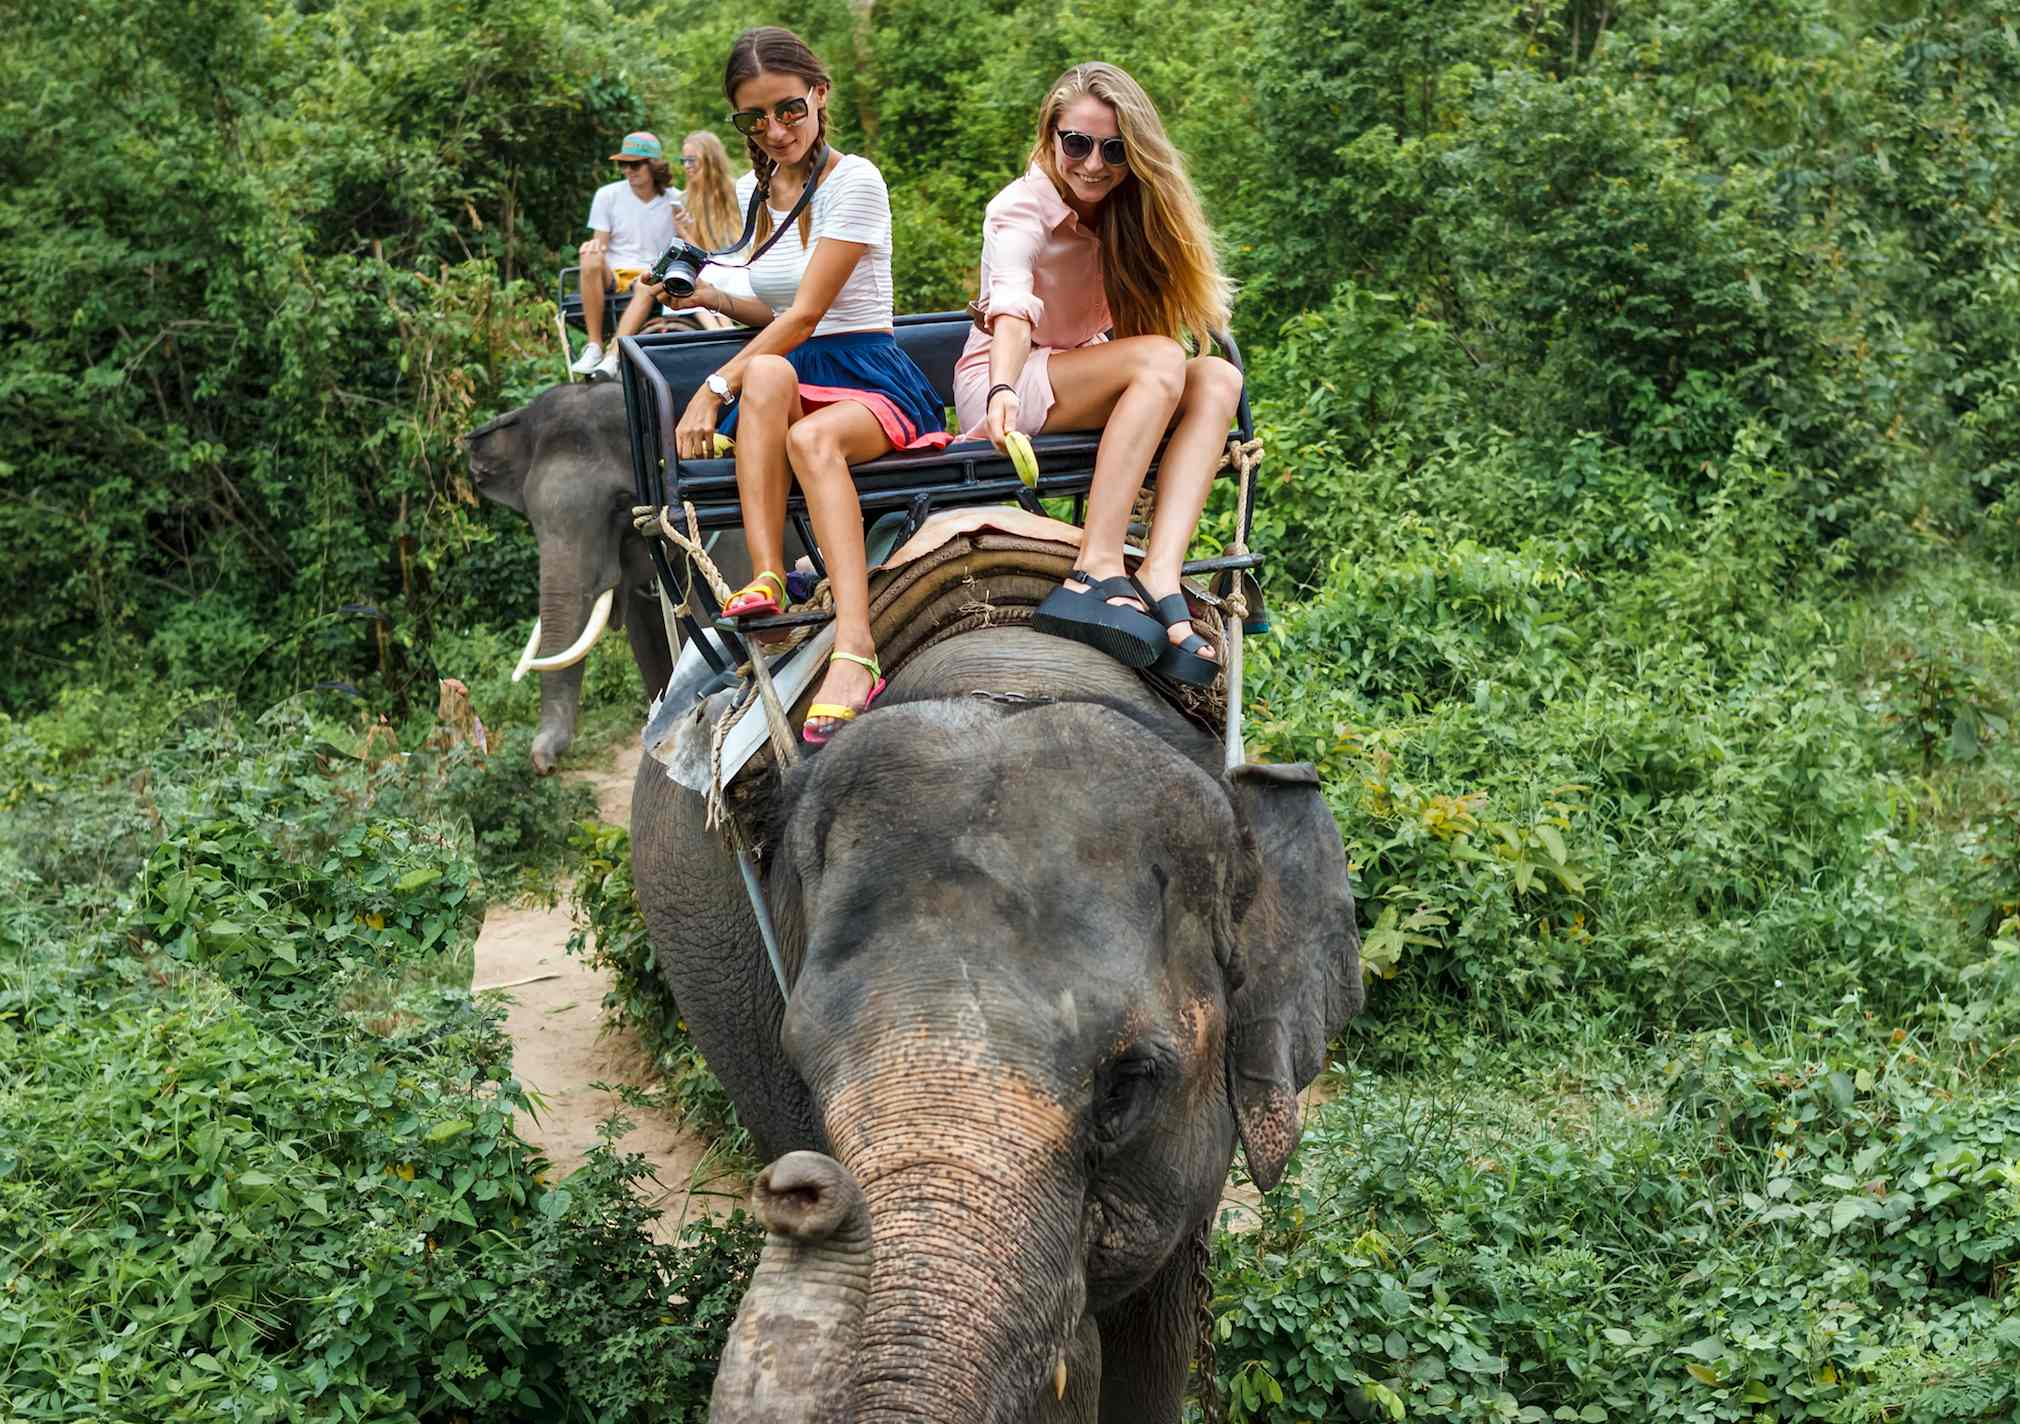 Two women ride on an elephant